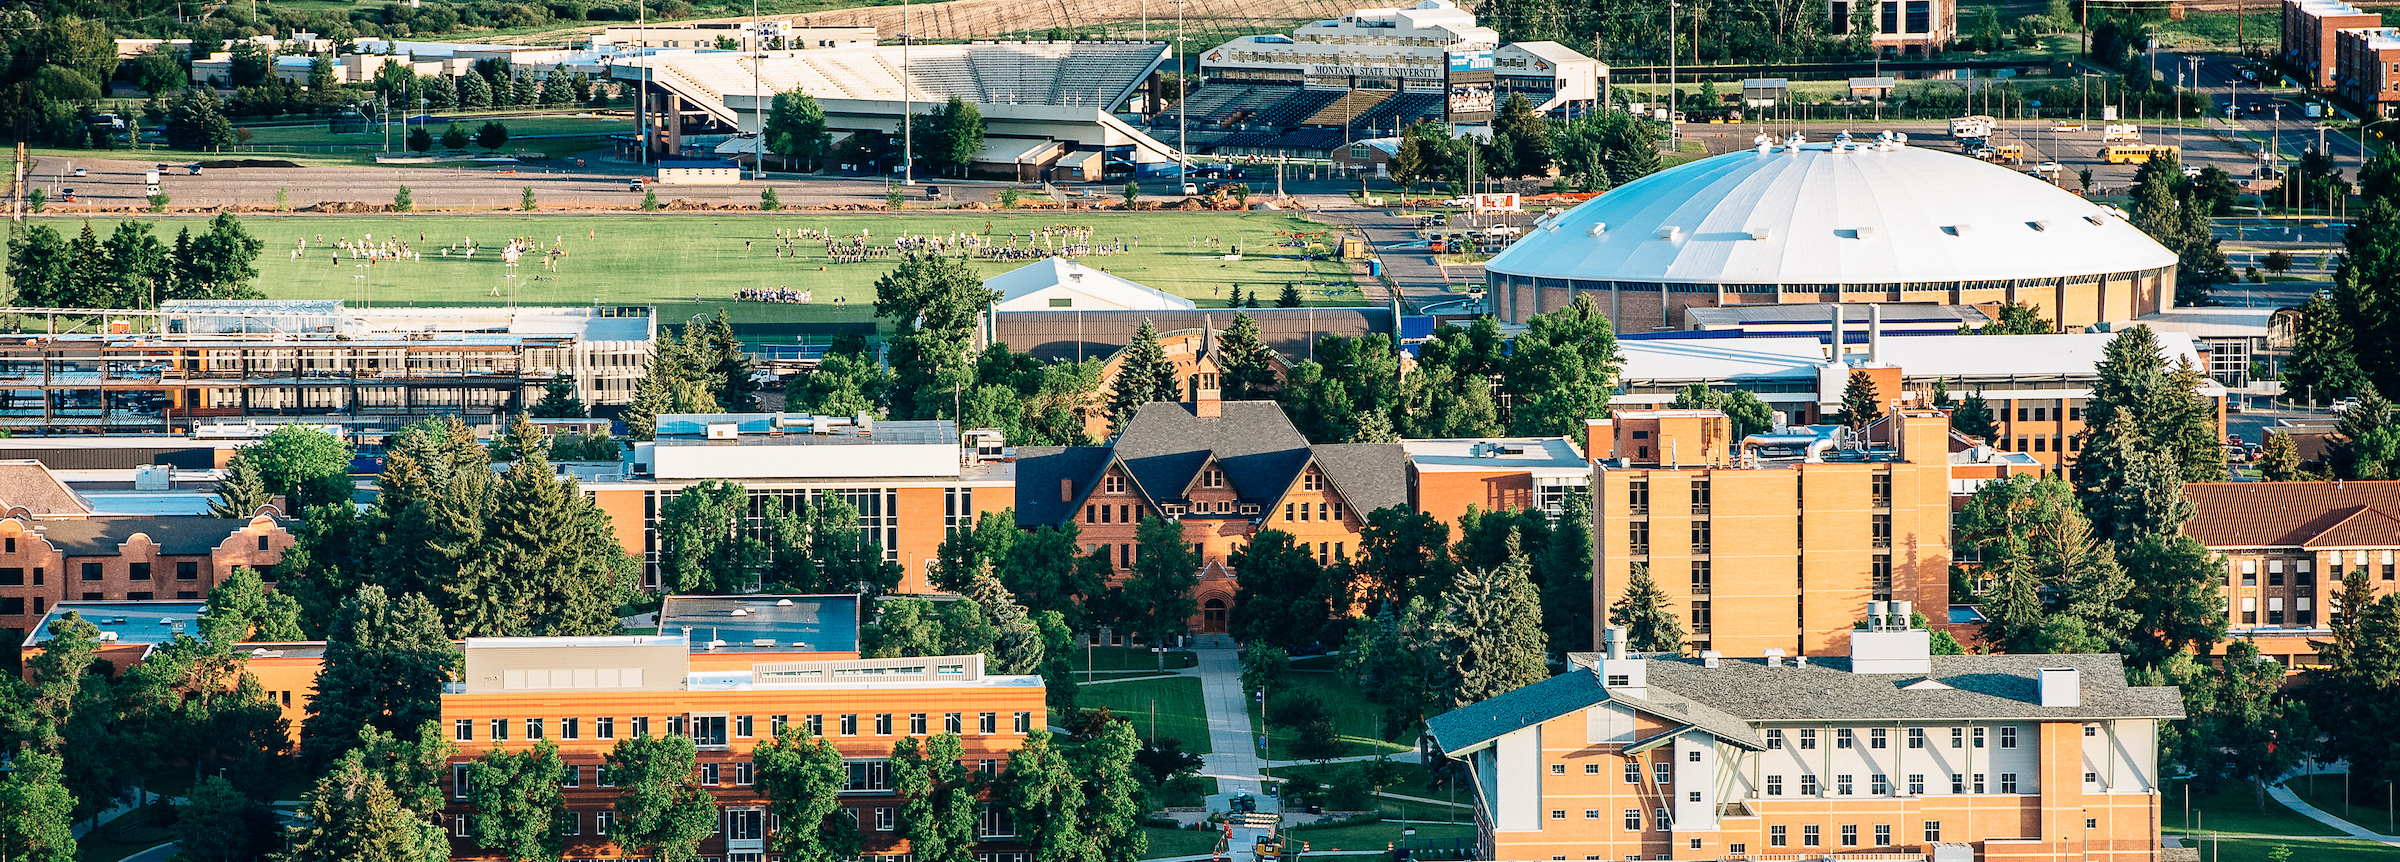 2017 Montana State University campus aerial